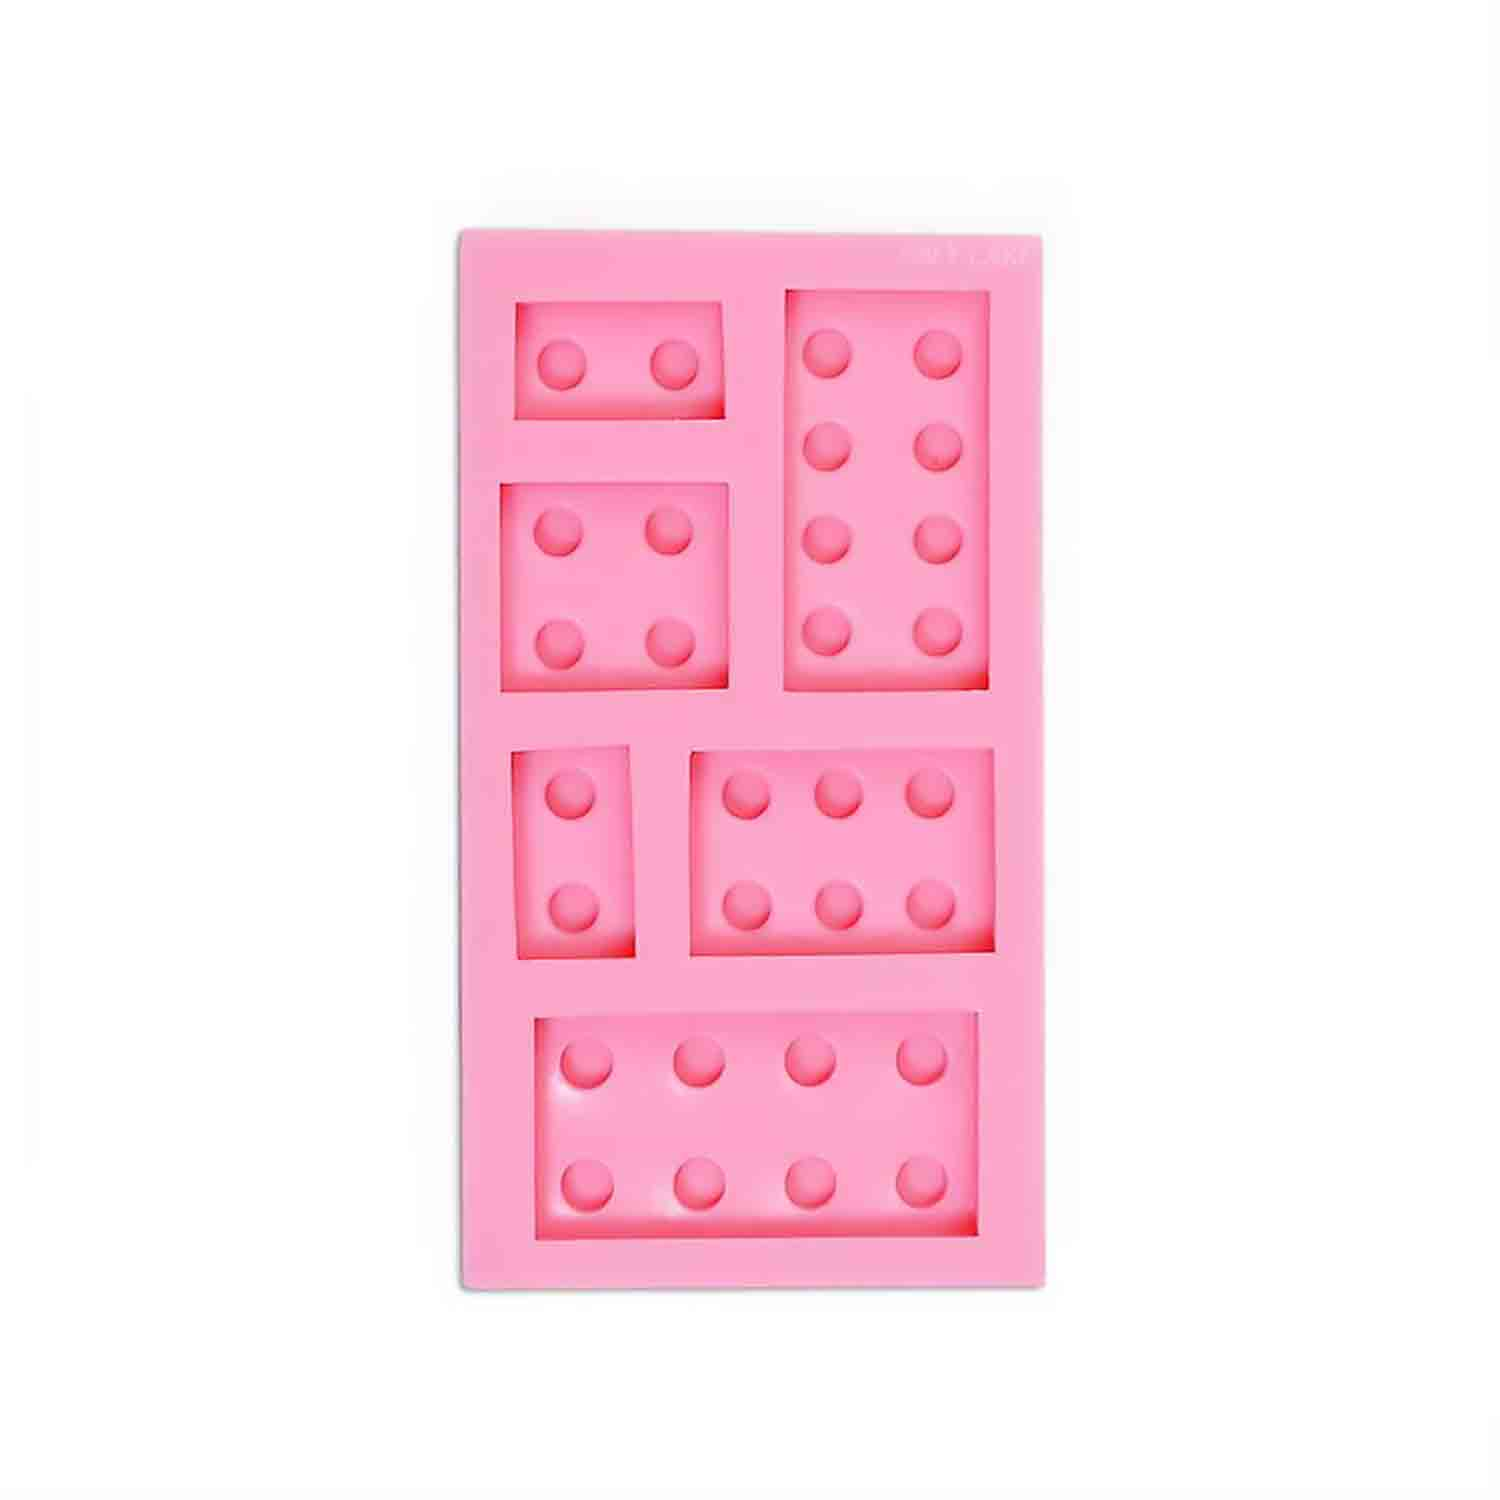 Brick, Block Silicone Mold